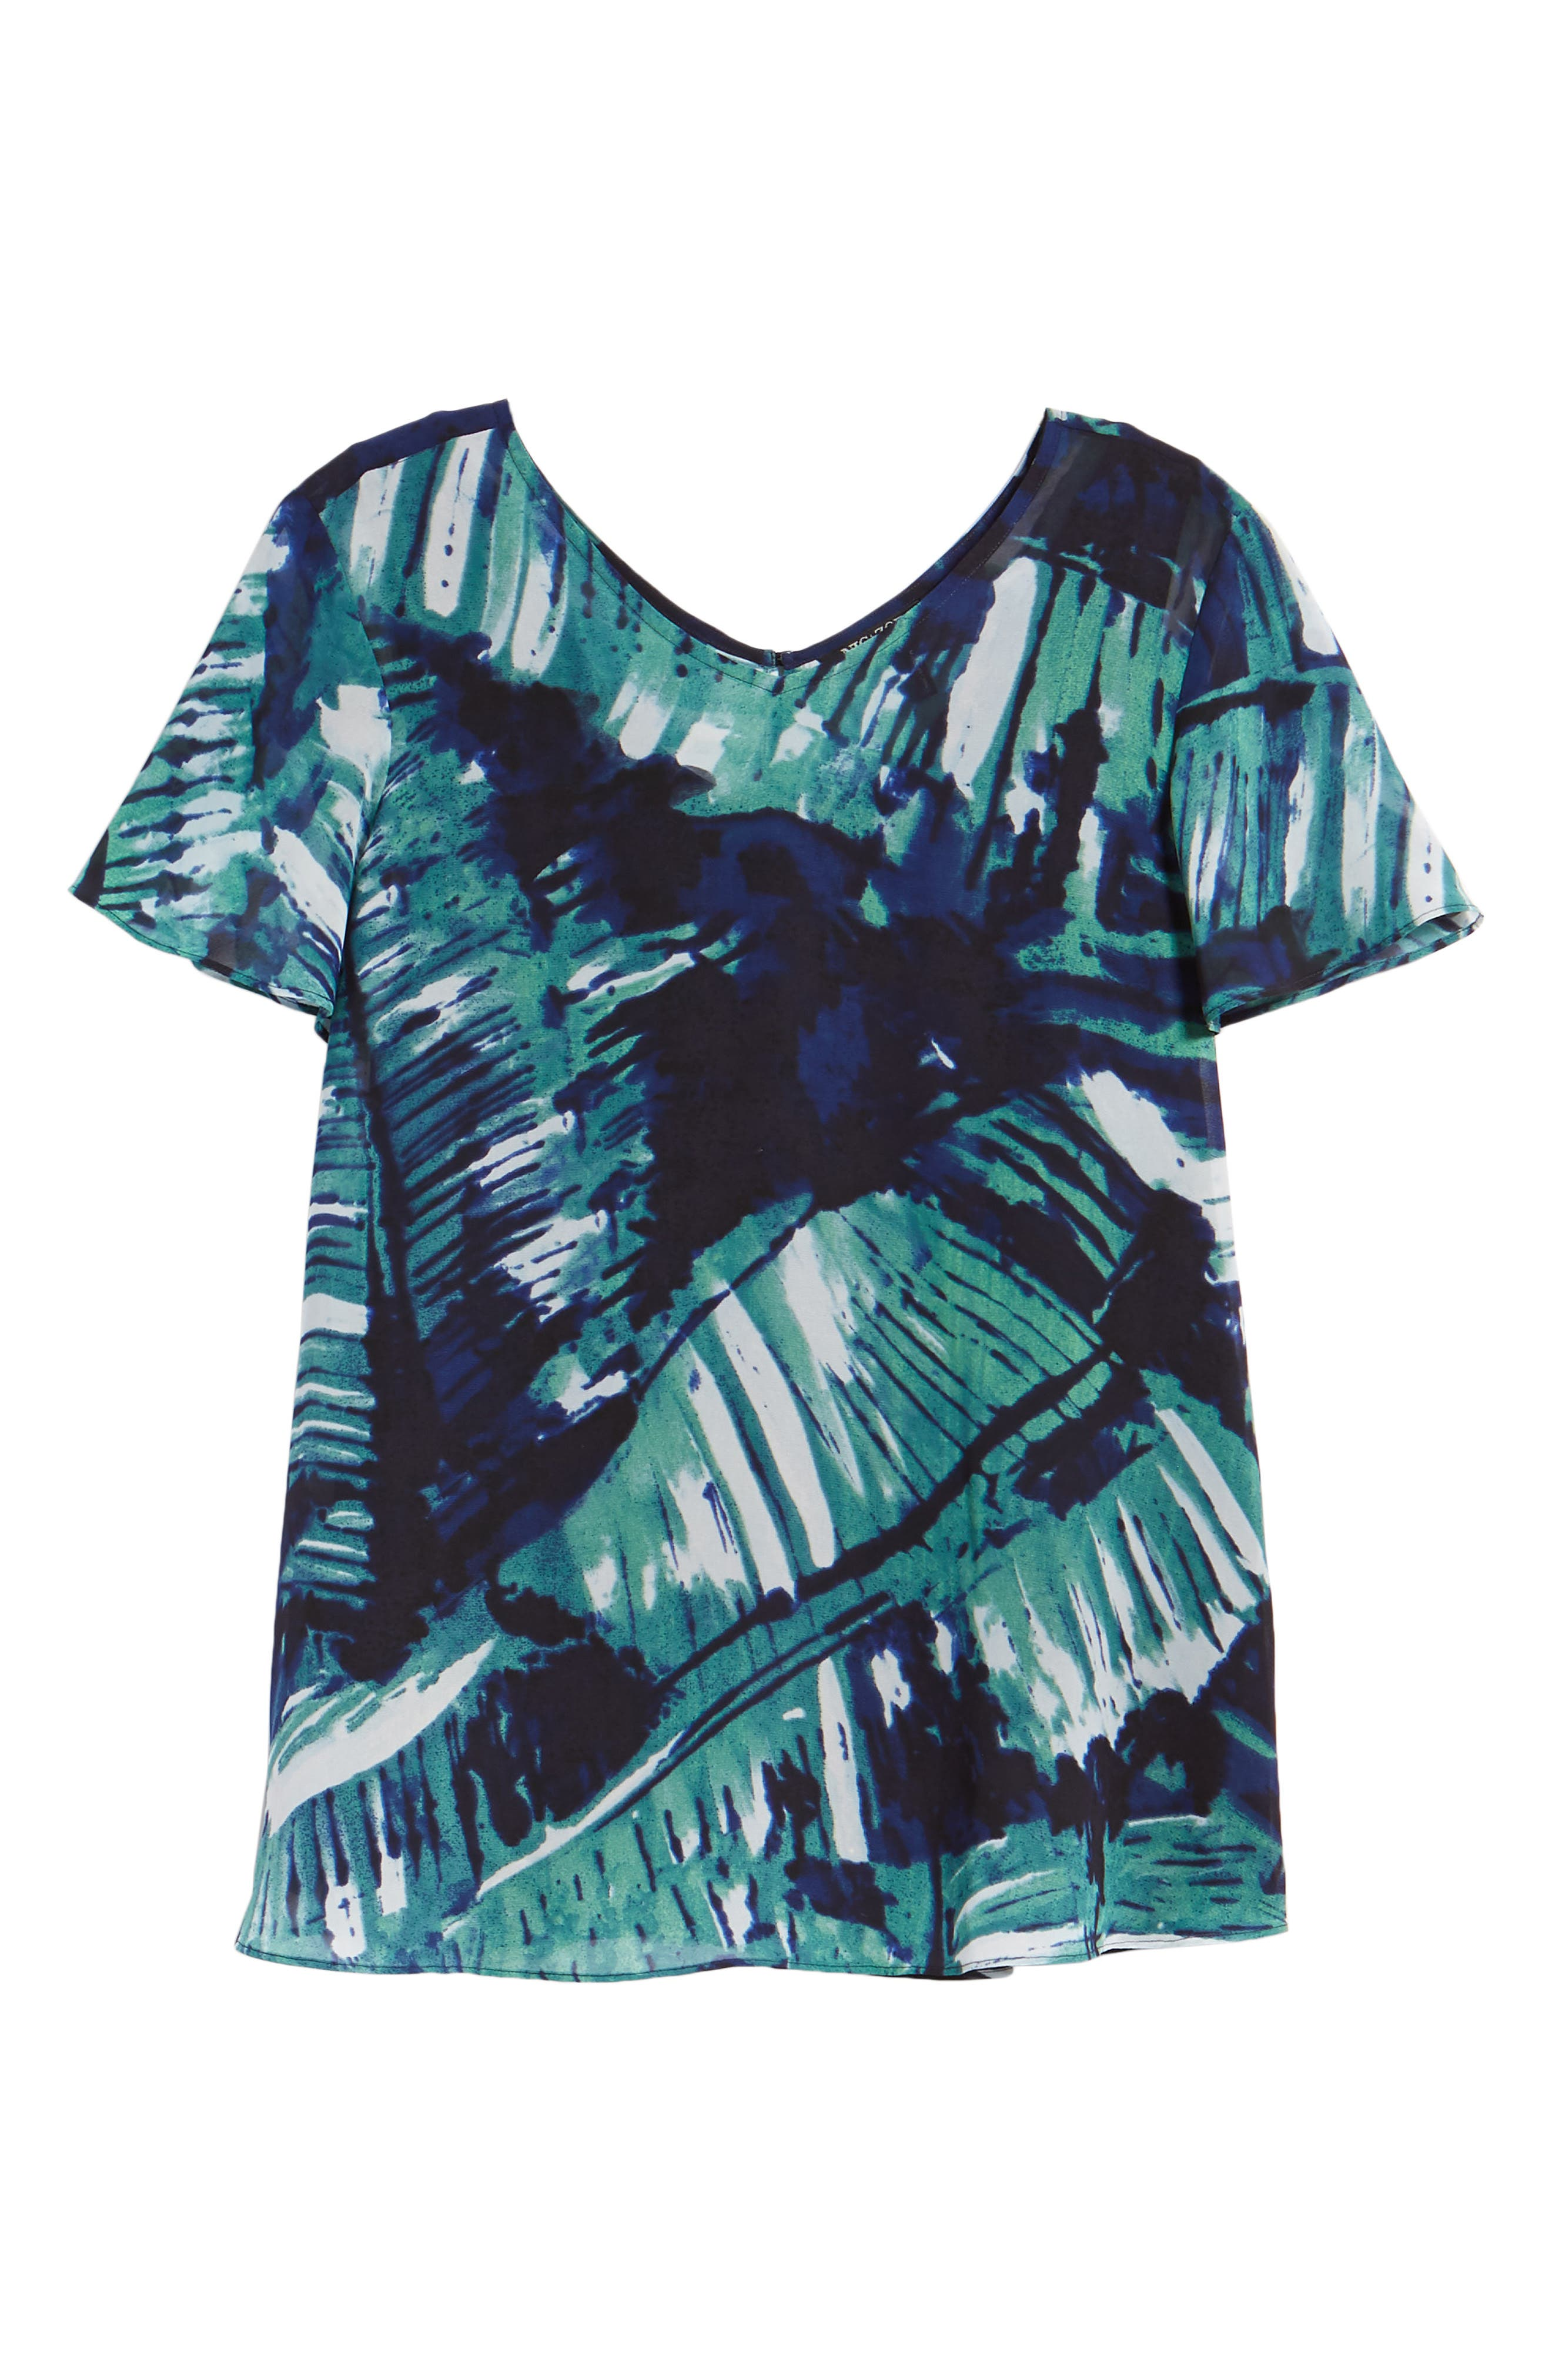 Leaf an Impression Print Top,                             Alternate thumbnail 7, color,                             390